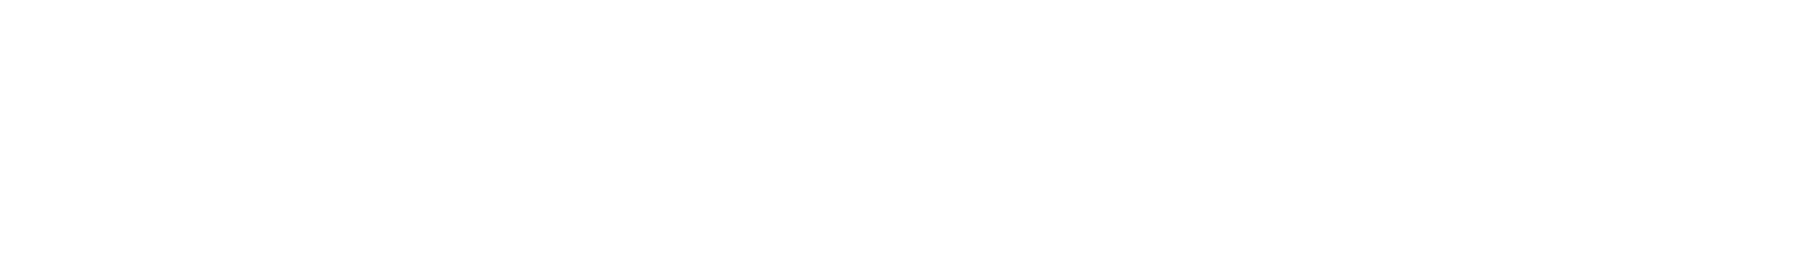 snare10